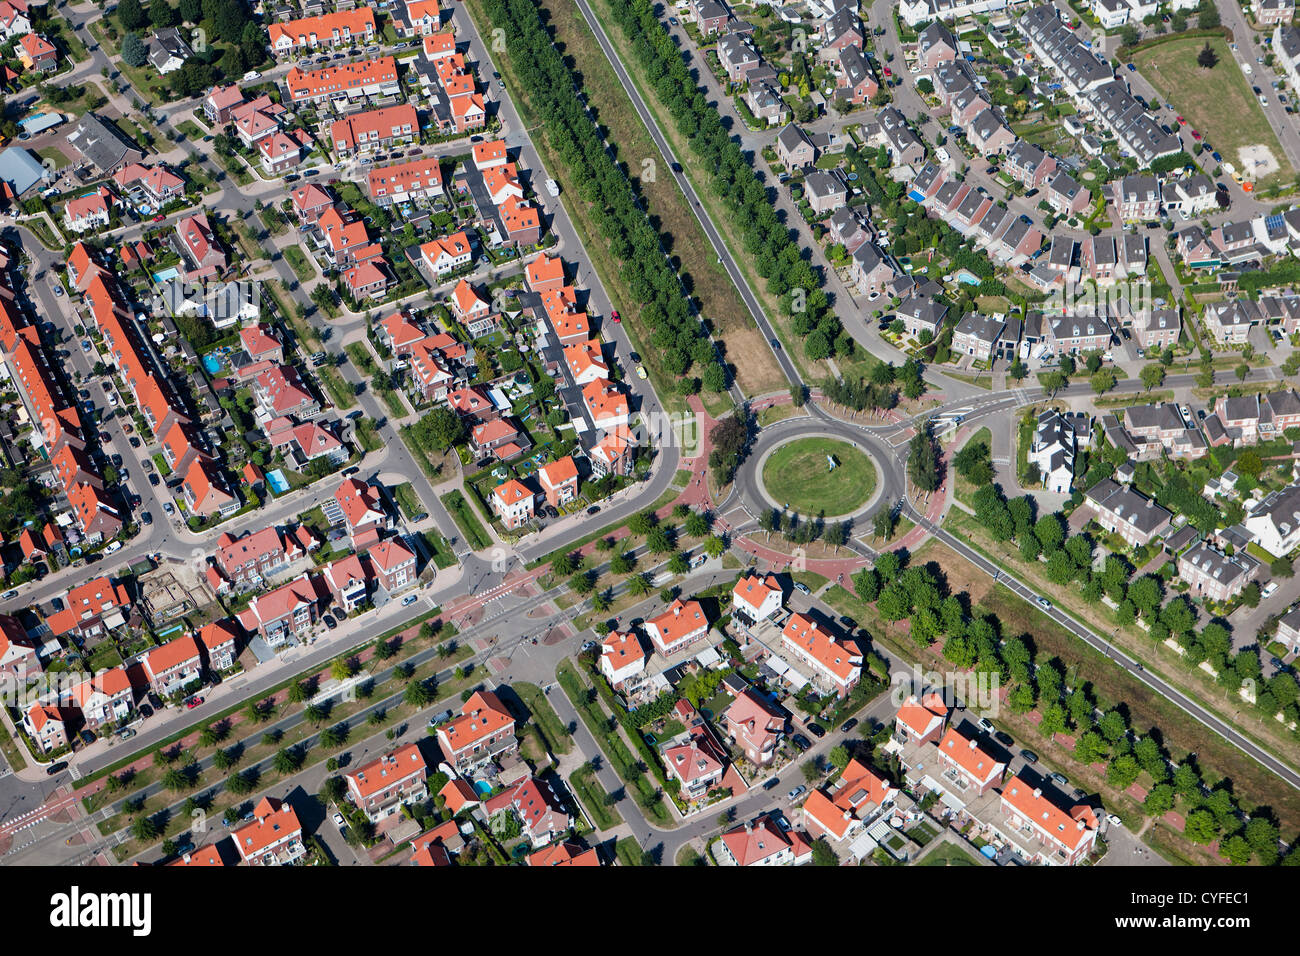 The Netherlands, Helmond, Residential district called Brandevoort. Aerial. - Stock Image